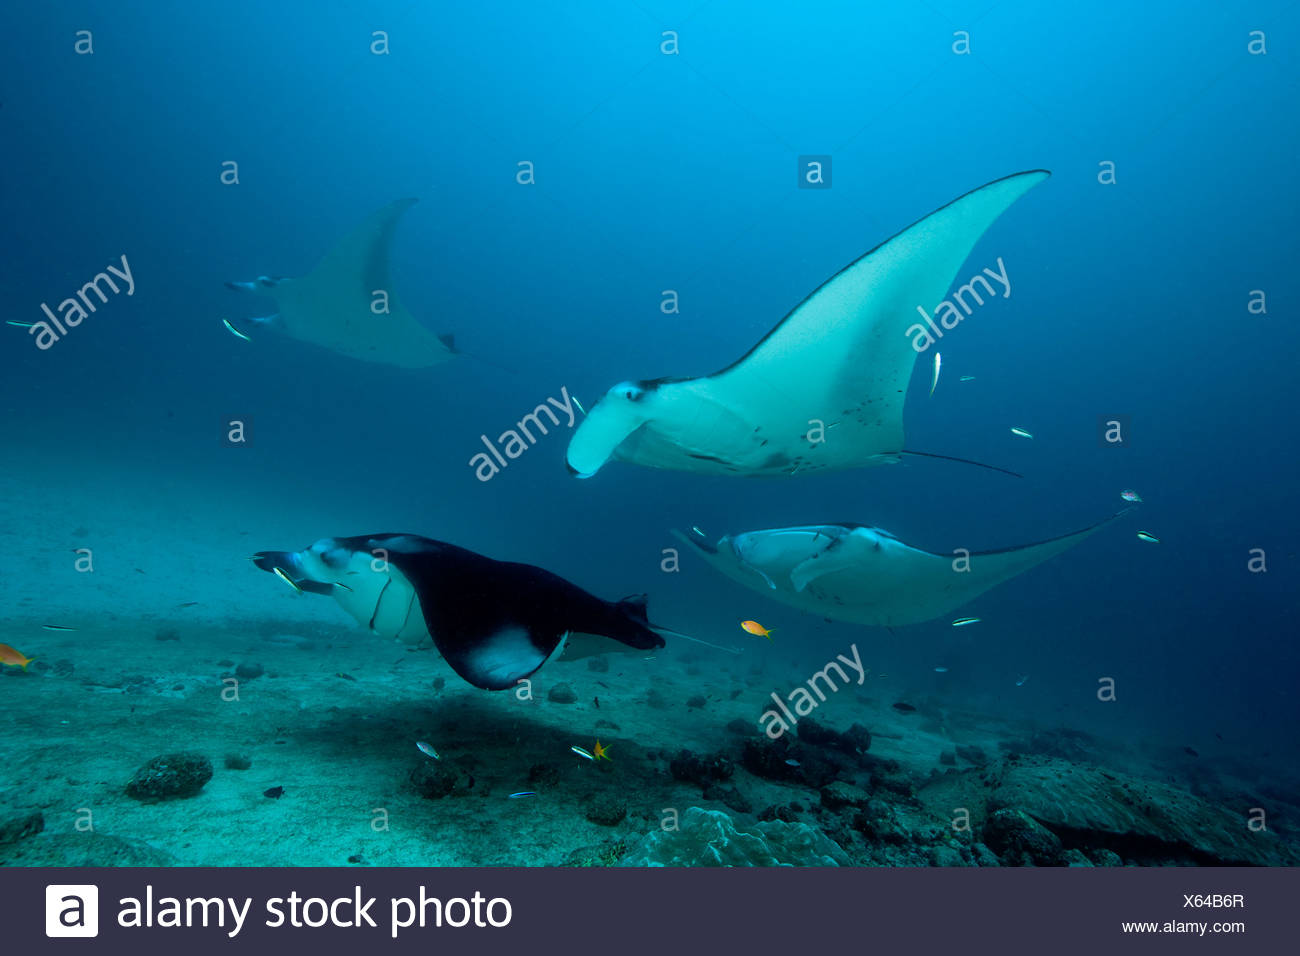 School of manta ray stock photos school of manta ray for Fish cleaning station near me